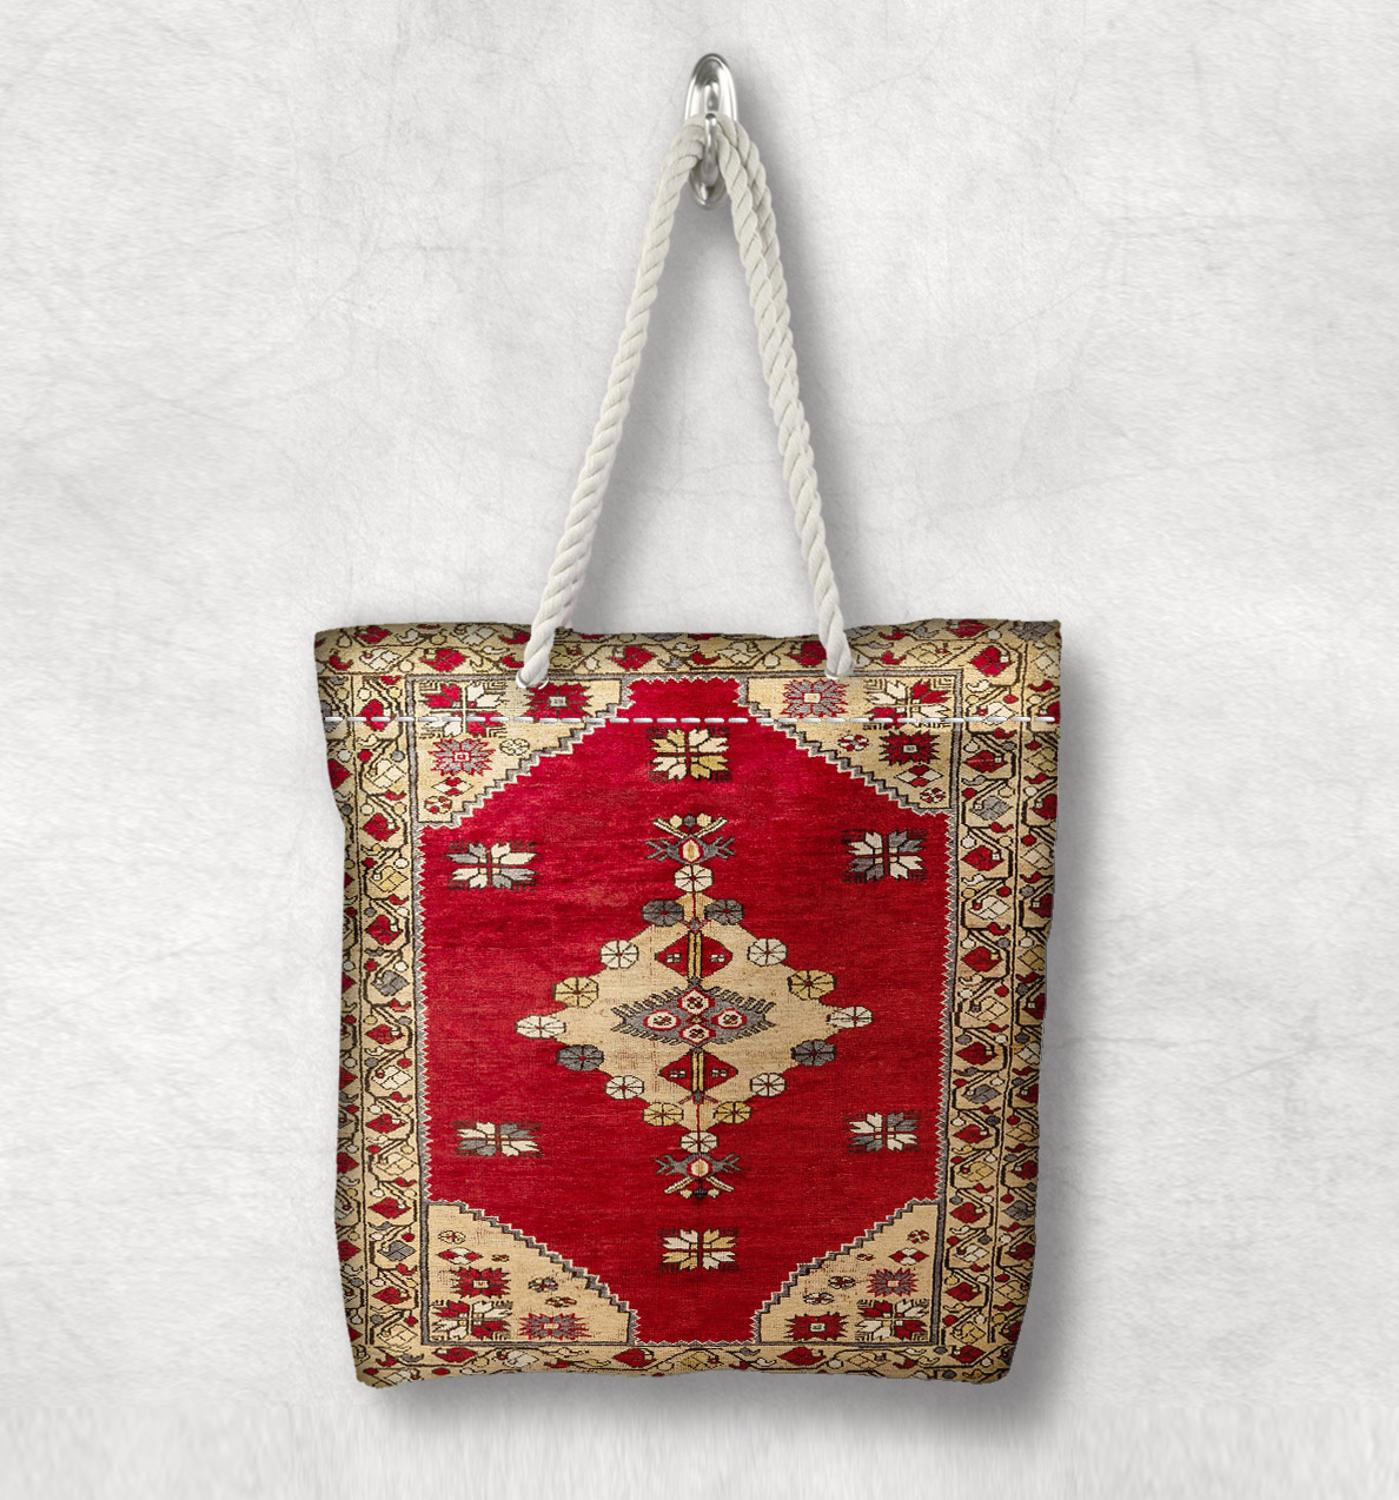 Else Yellow Red Retro Anatolia Antique Kilim Design White Rope Handle Canvas Bag Cotton Canvas Zippered Tote Bag Shoulder Bag